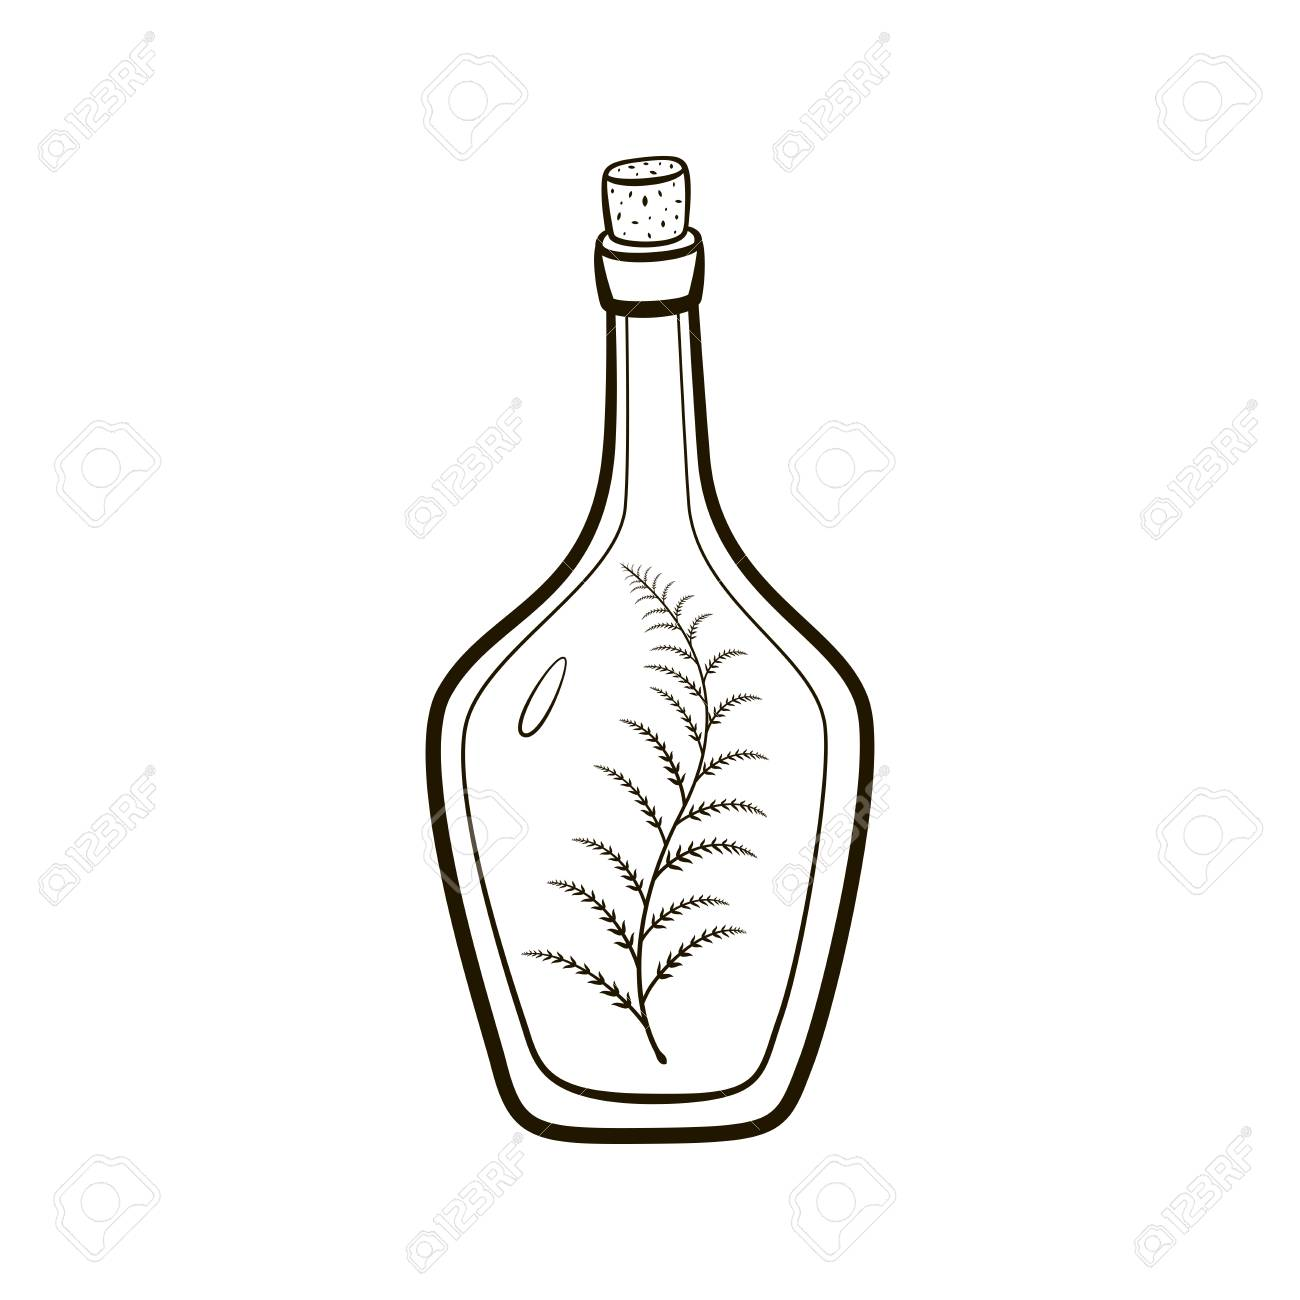 Vintage Bottle With Sprig Inside Hand Drawing Illustration On